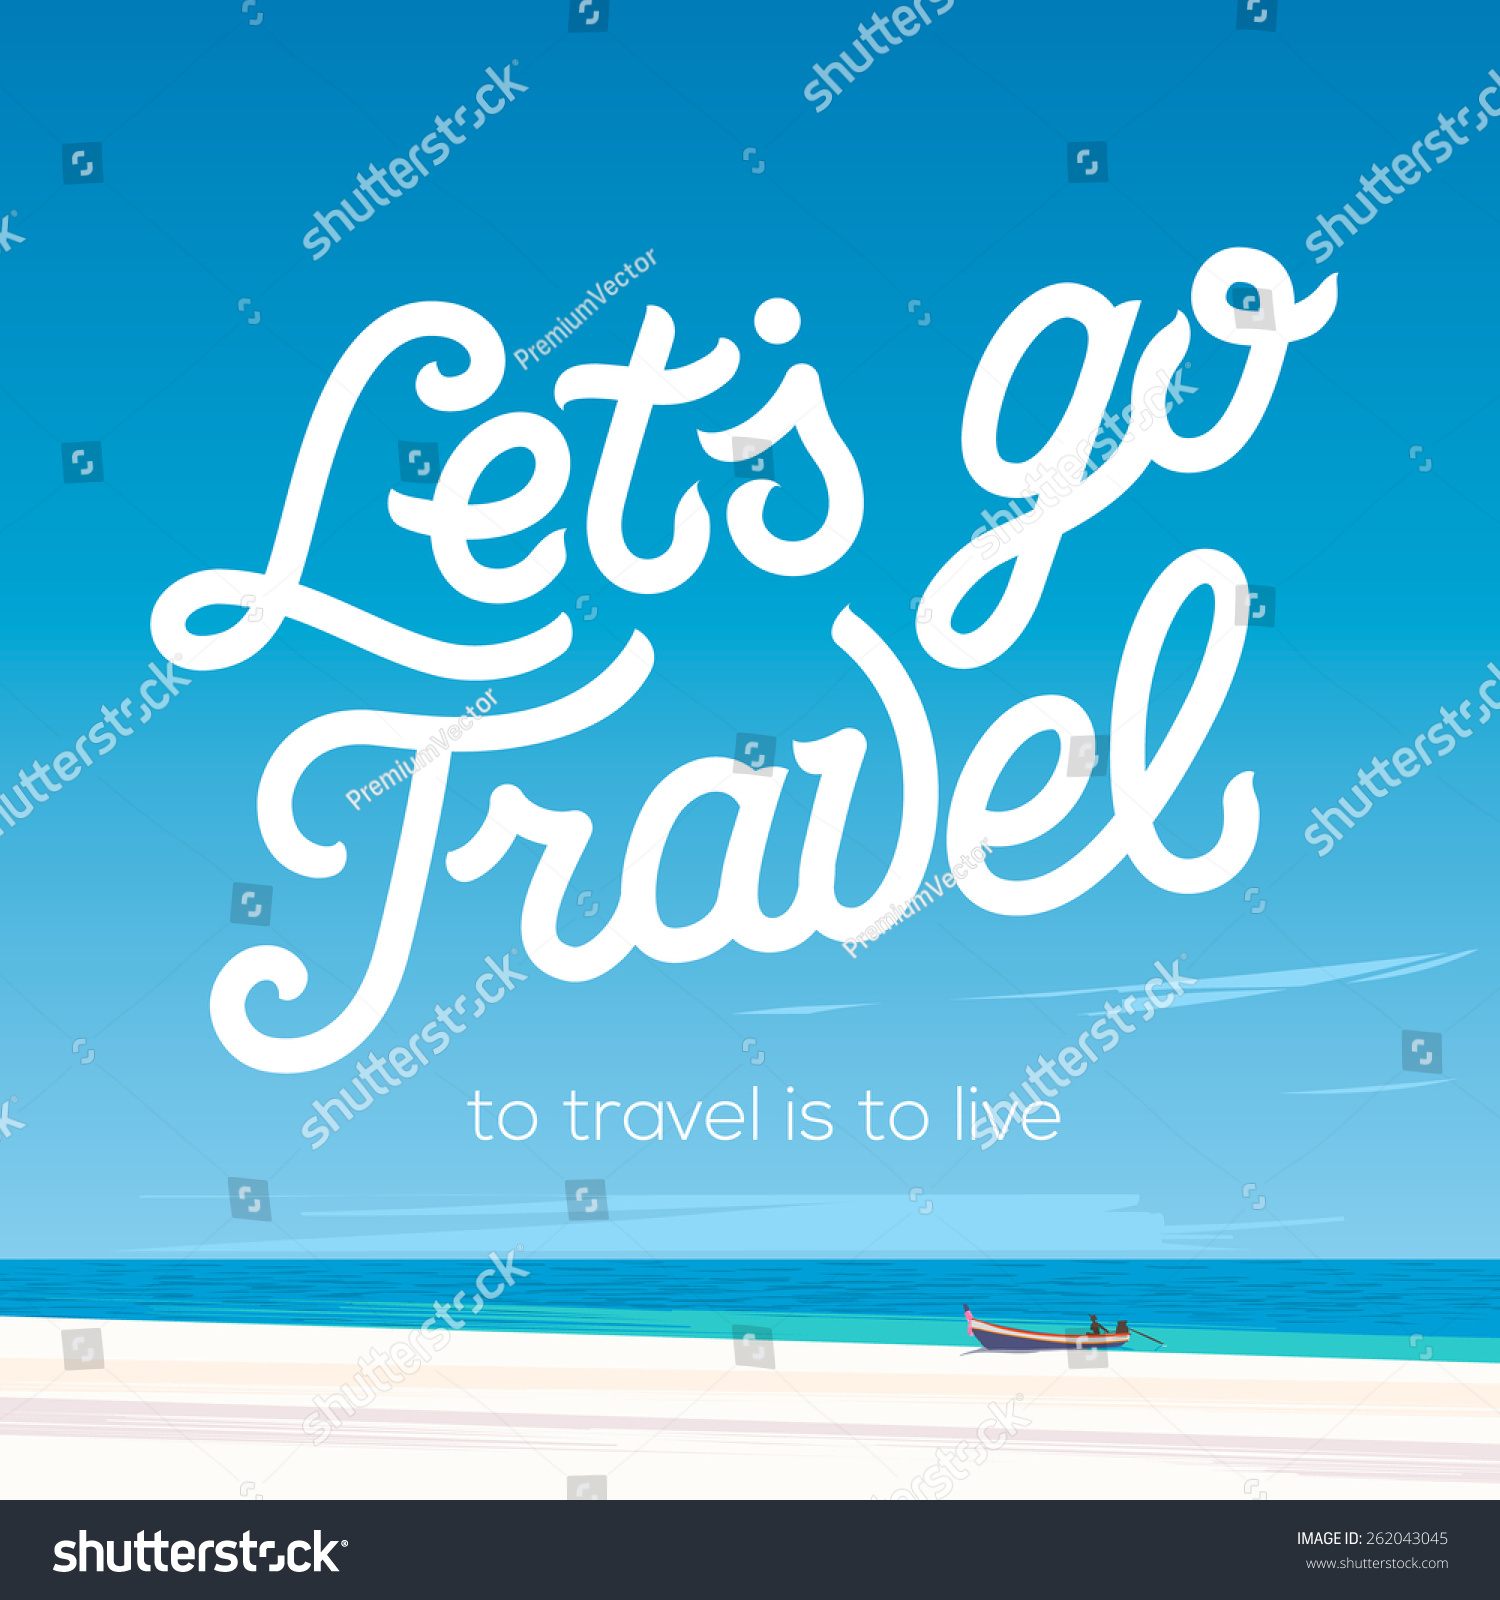 Go Travel Vacations: Lets Go Travel. Vacations And Tourism Concept. Tropical